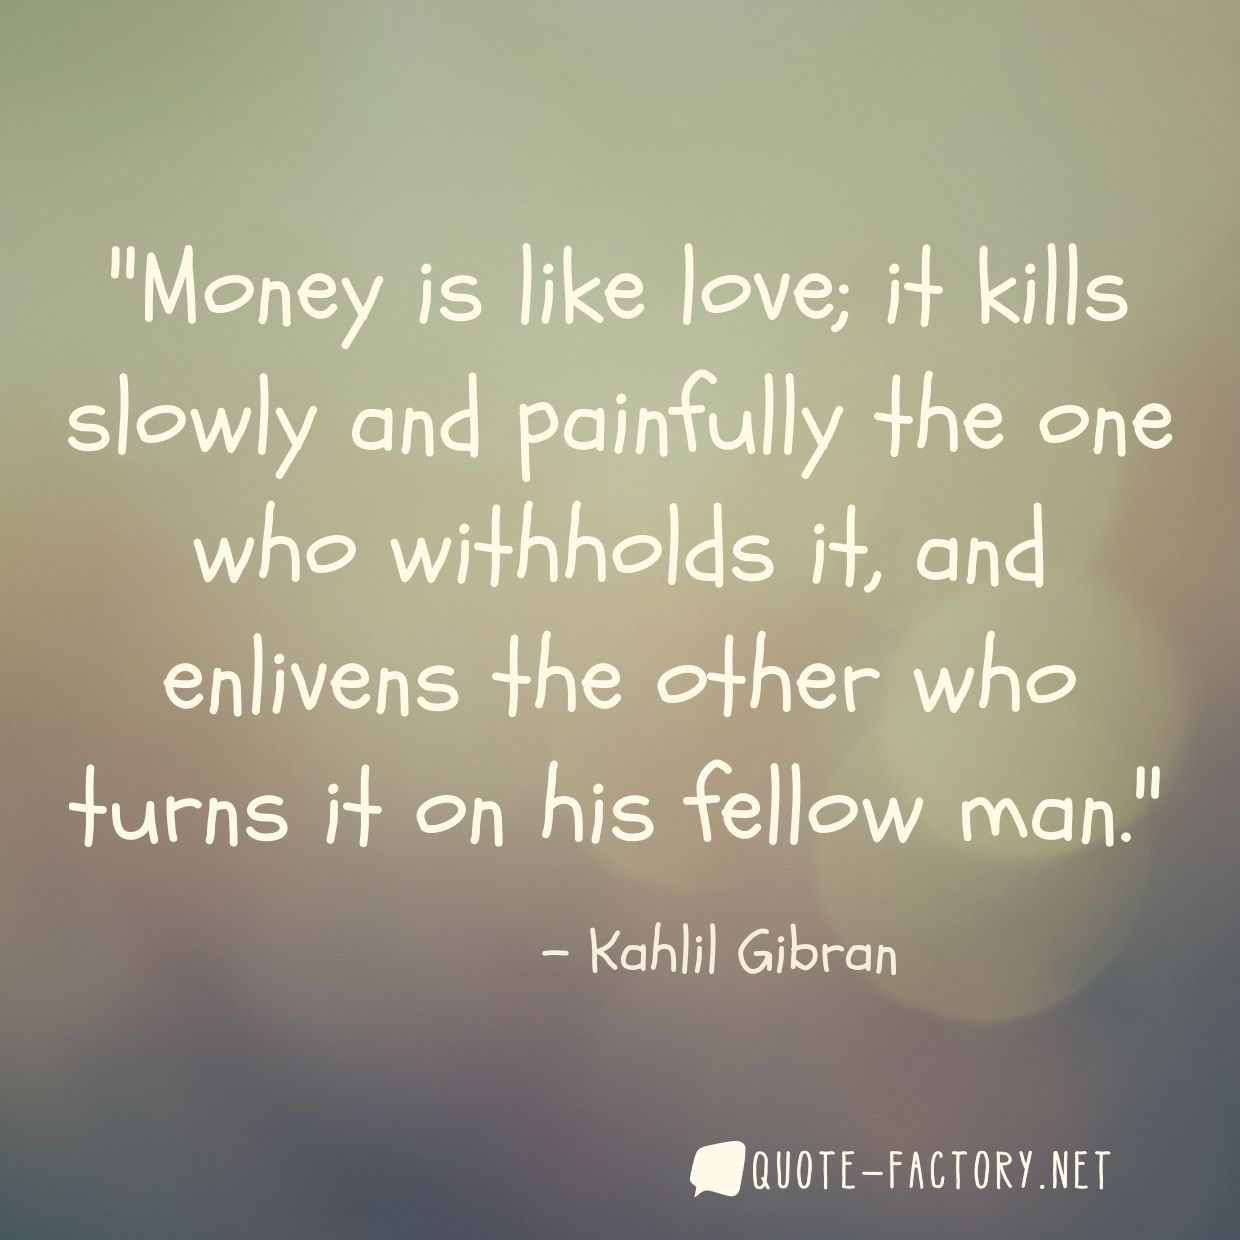 Money is like love; it kills slowly and painfully the one who withholds it, and enlivens the other who turns it on his fellow man.